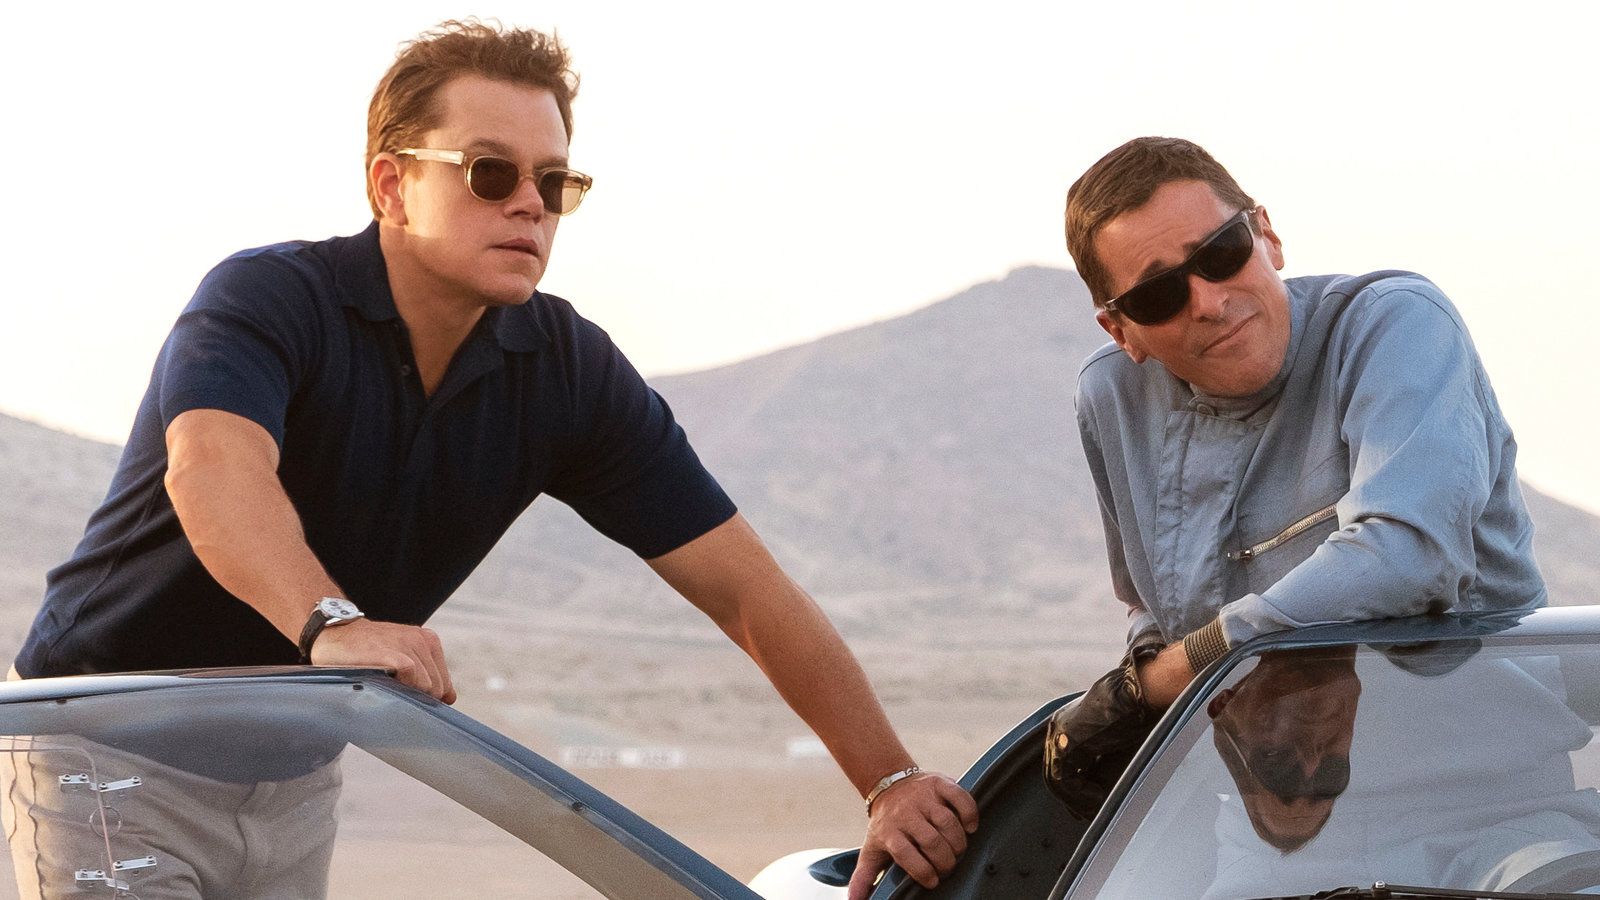 Ford v Ferrari feels like a classic Oscar movie. Can it win Best Picture?